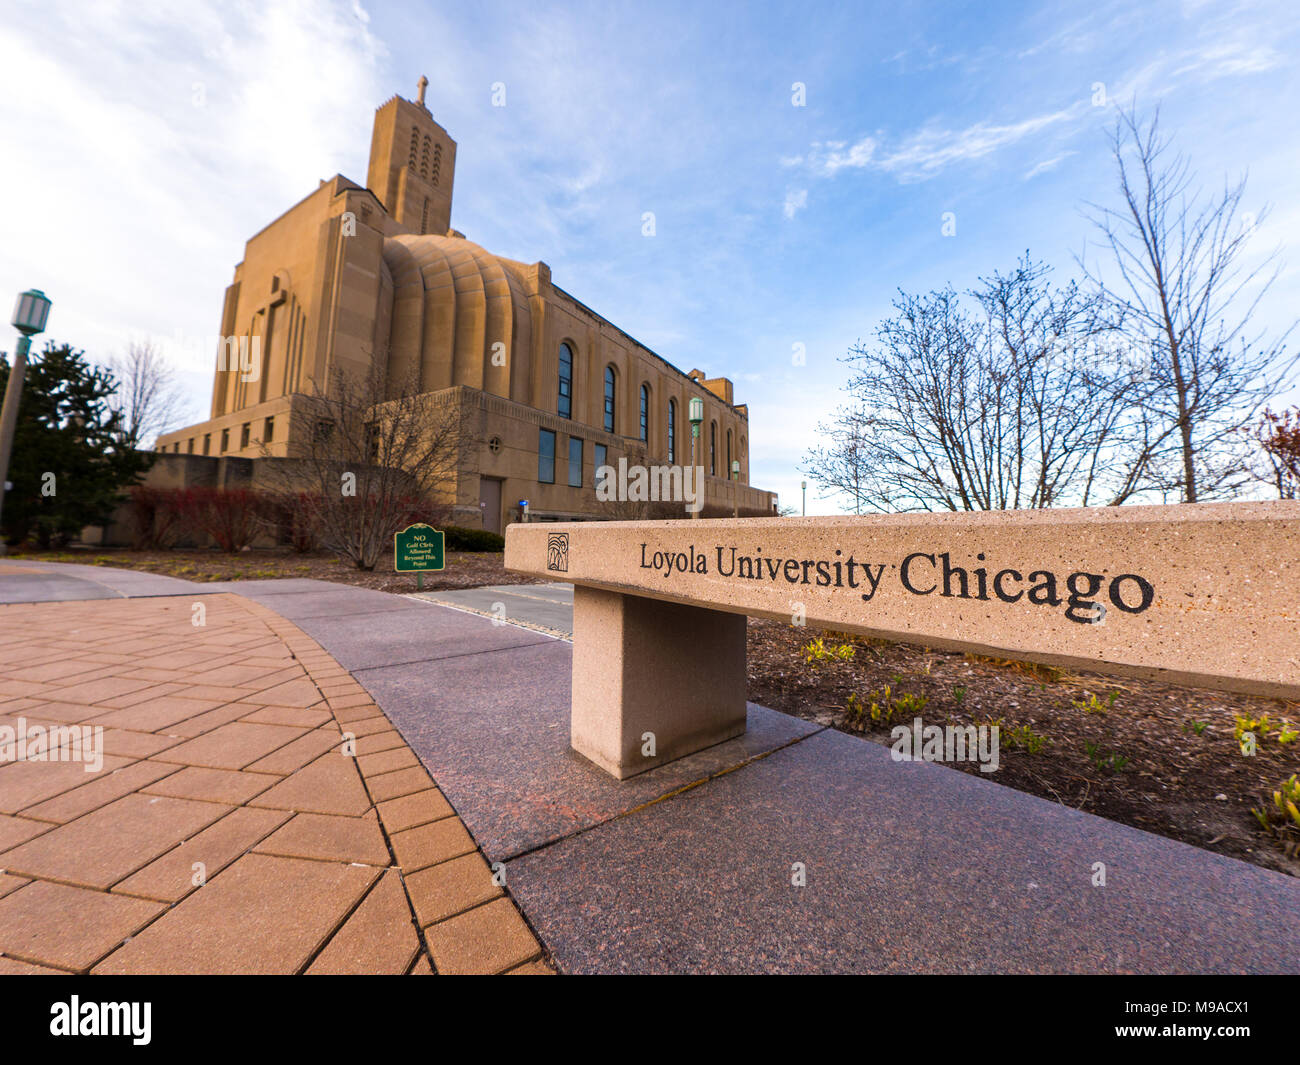 Chicago, IL - March 23, 2018: Loyola University students and